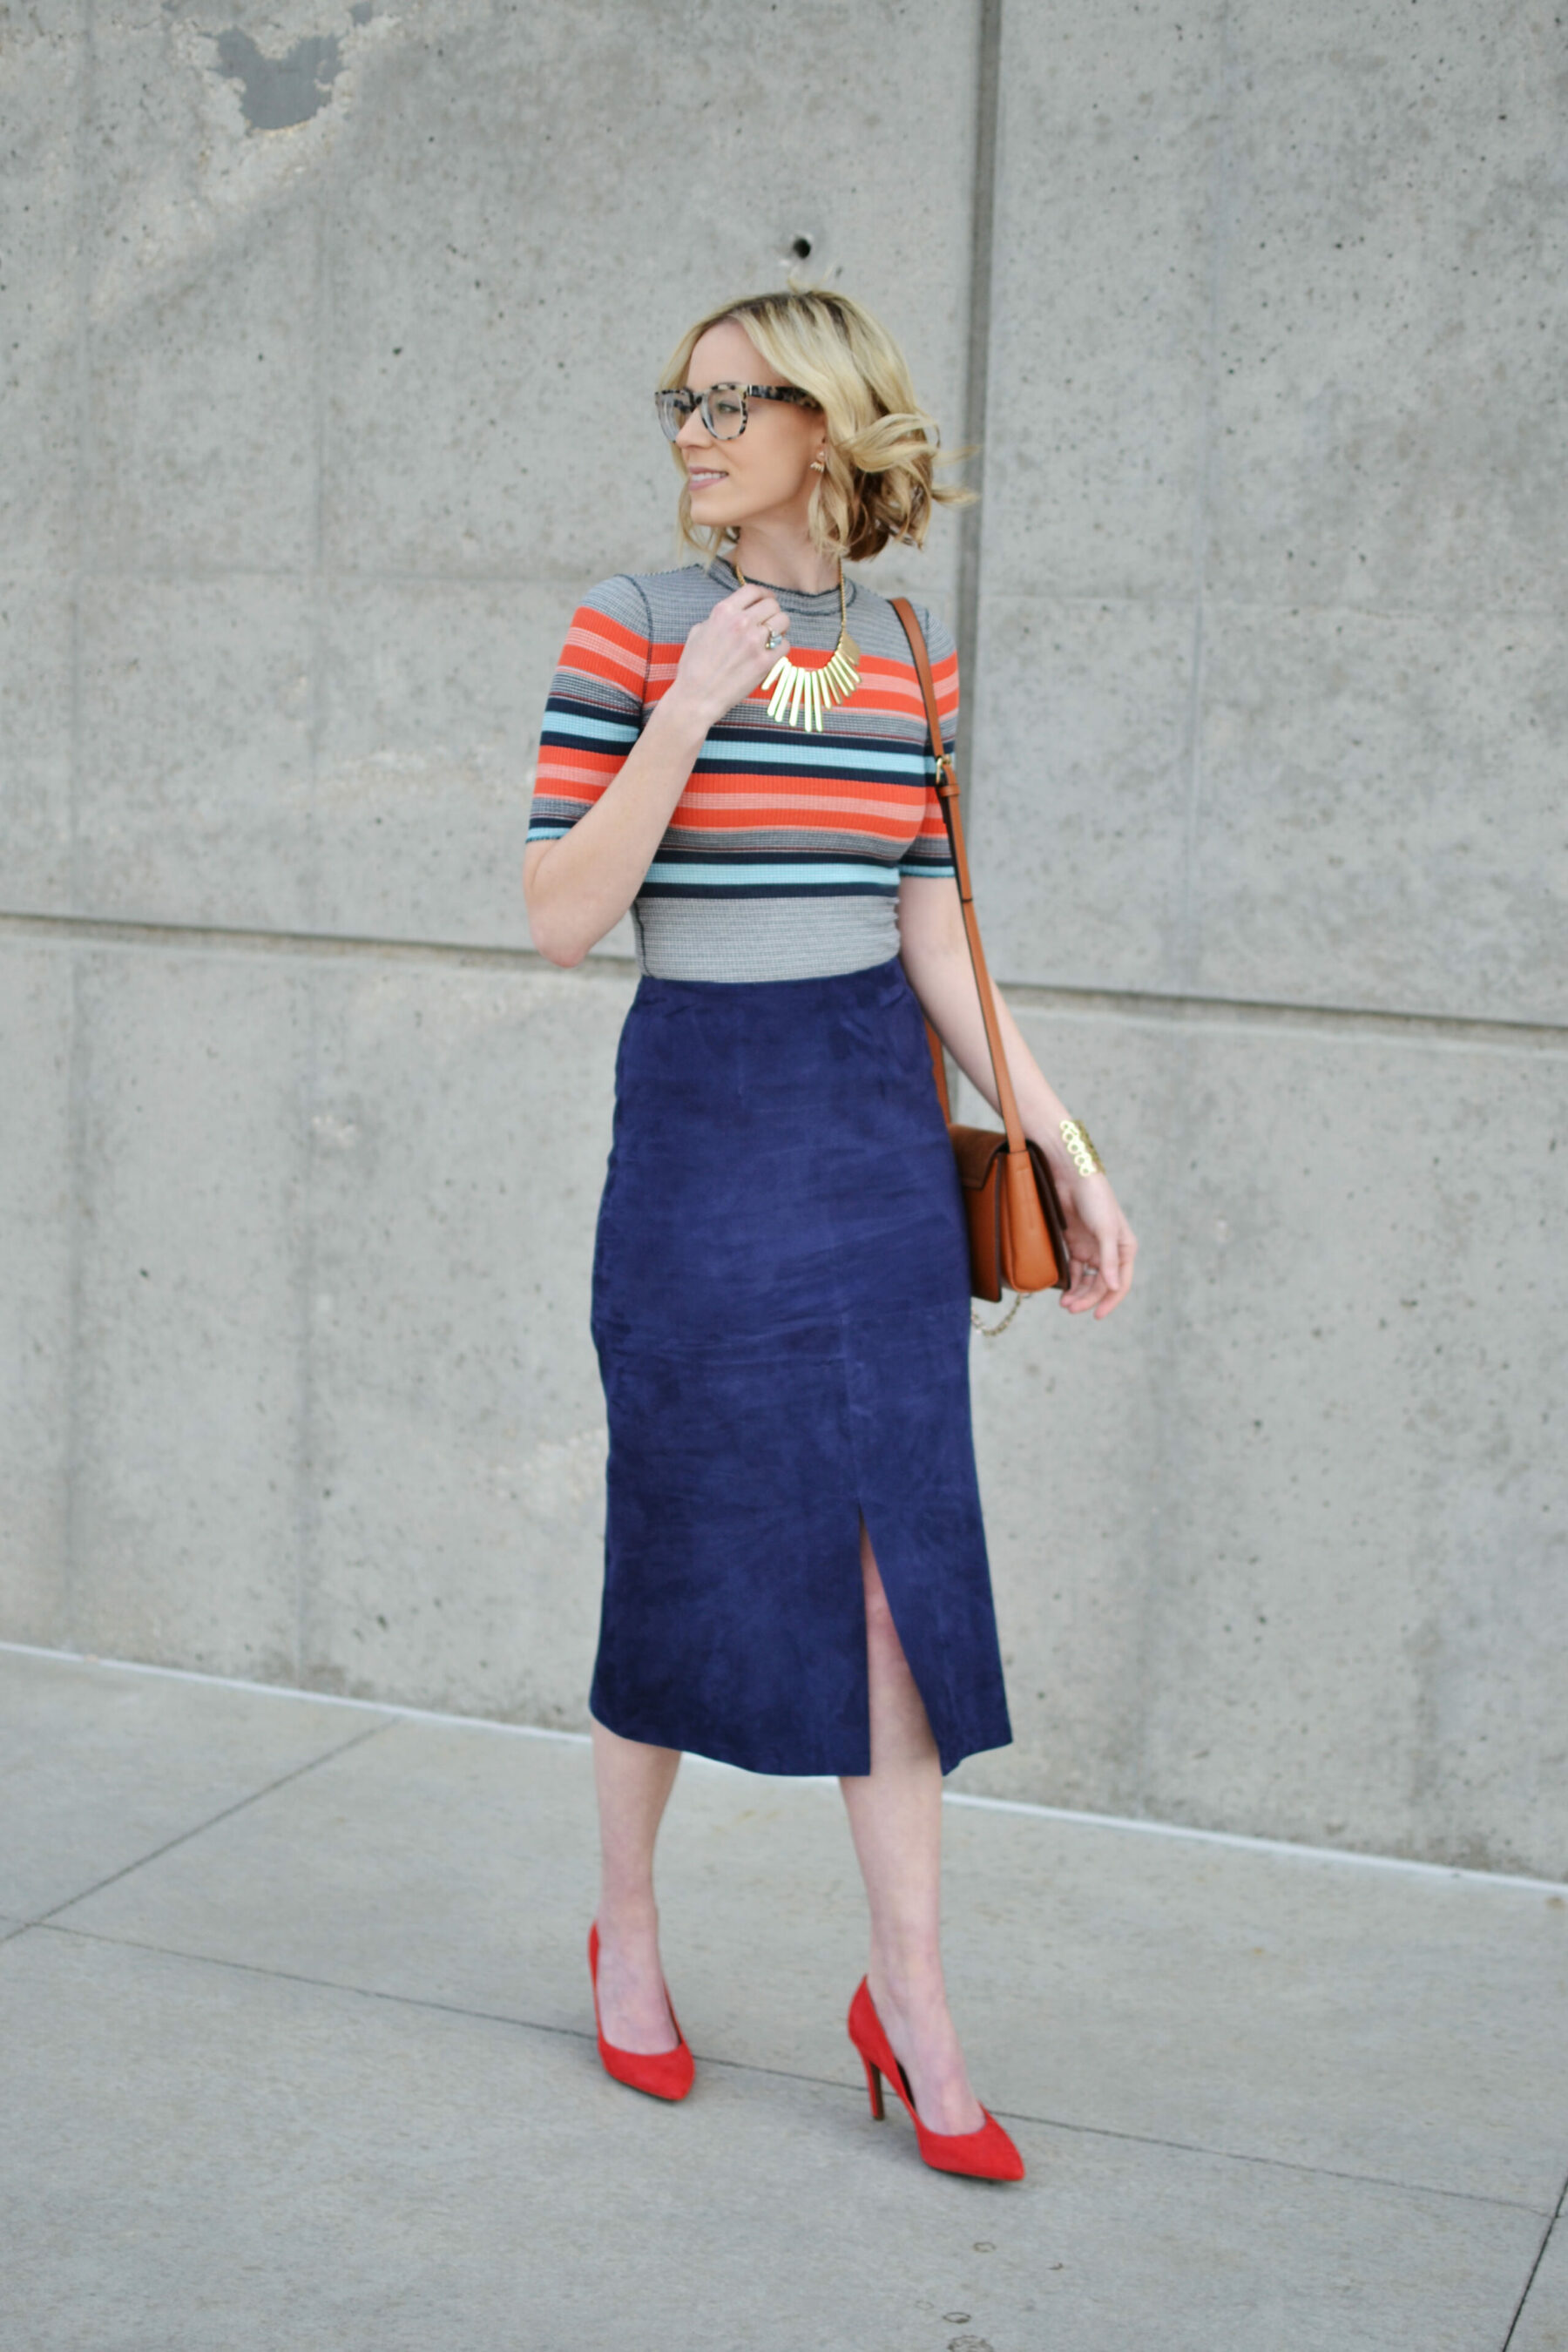 Blue Suede Skirt - Straight A Style